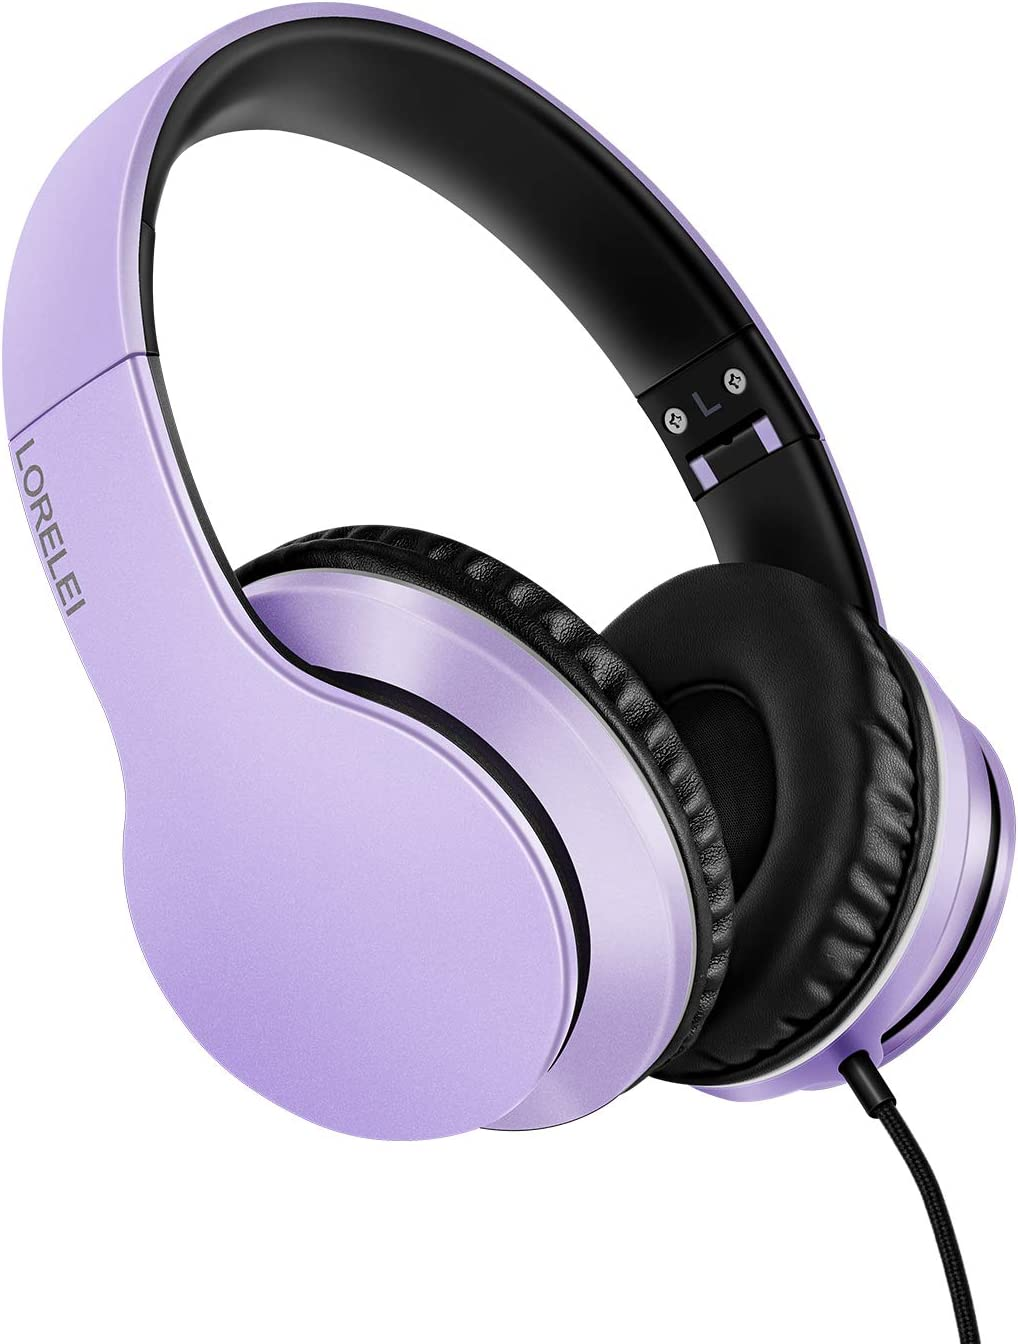 LORELEI X6 Over-Ear Headphones with Microphone, Lightweight Foldable & Portable Stereo Bass Headphones with 1.45M No-Tangle,Wired Headphones for Smartphone Tablet MP3 / 4 (Purple-Black)